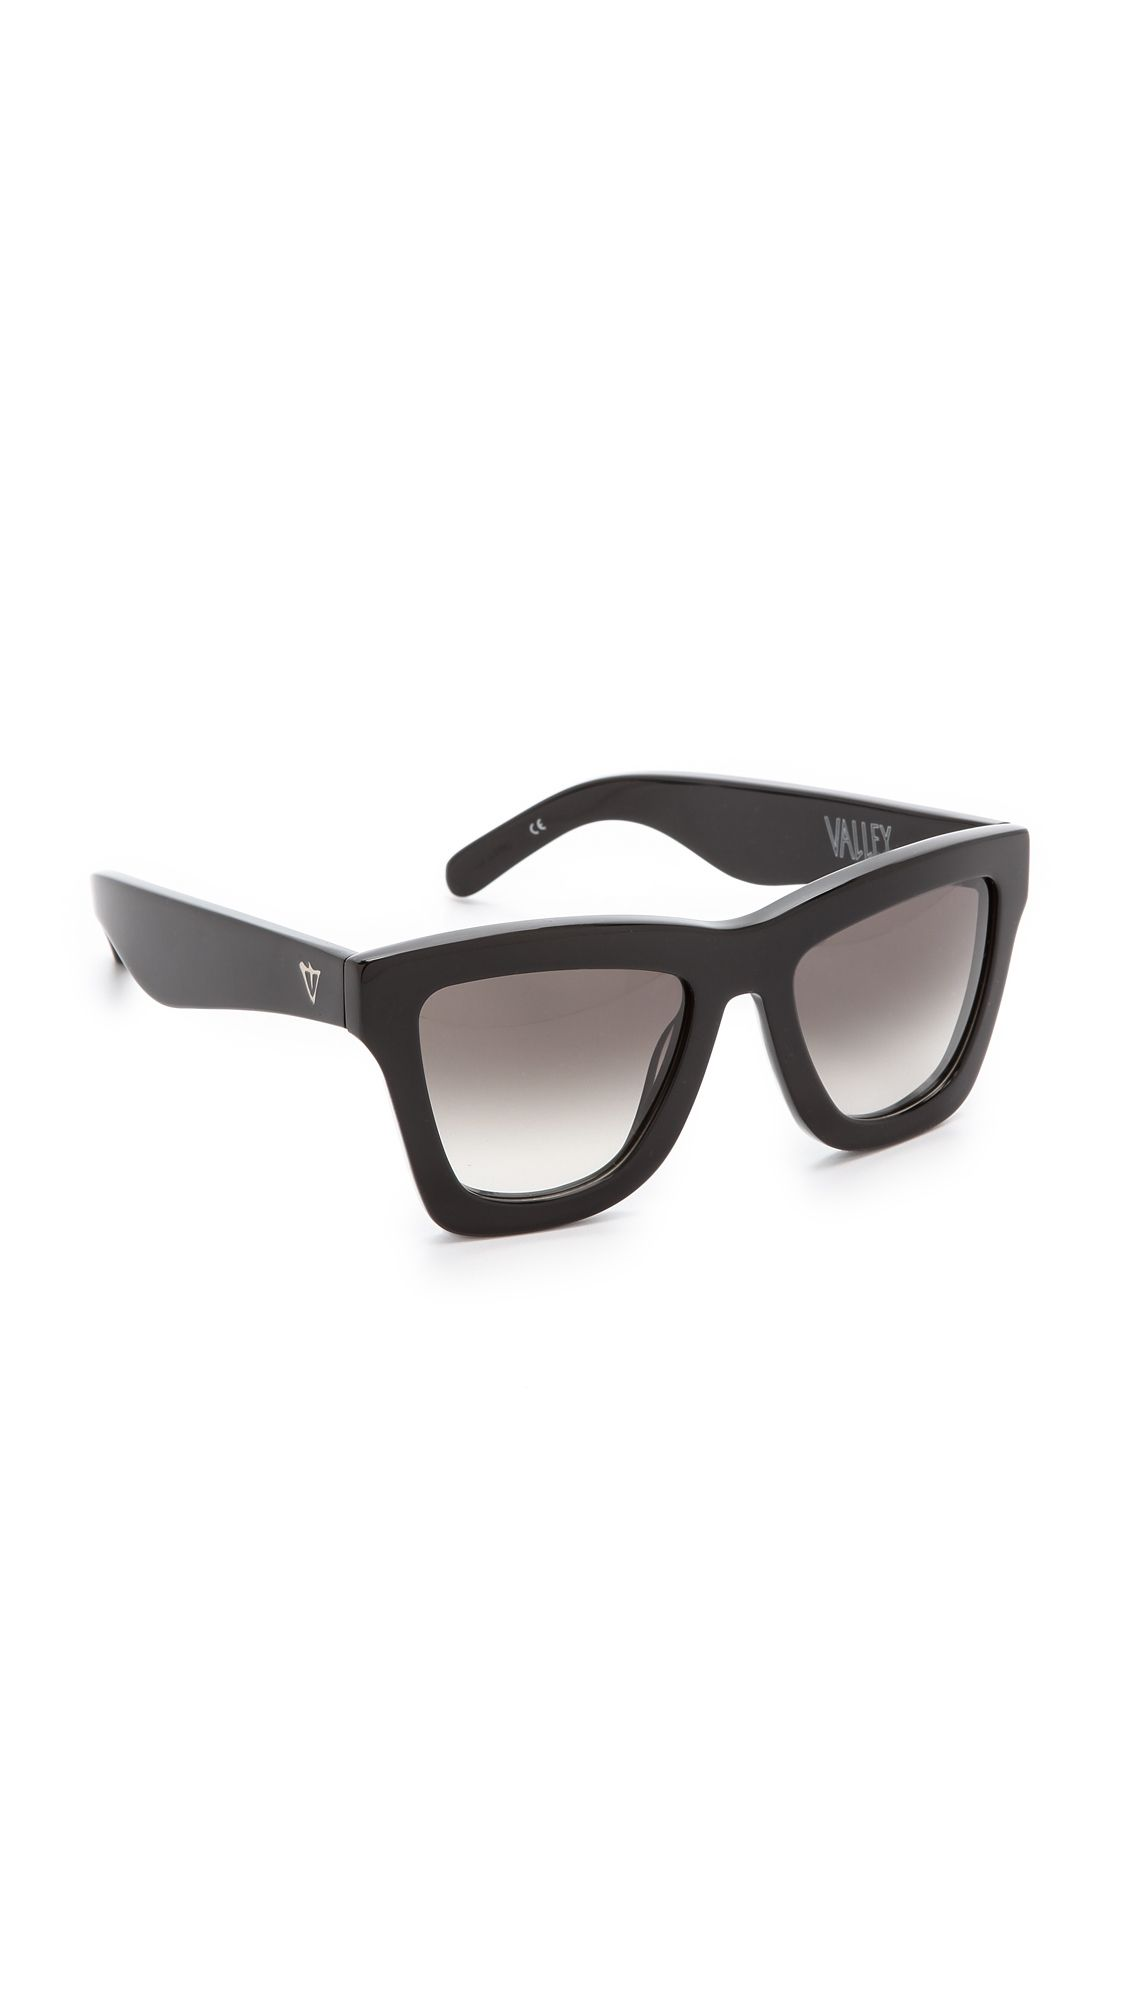 4f5fceba23 Valley Eyewear DB Sunglasses